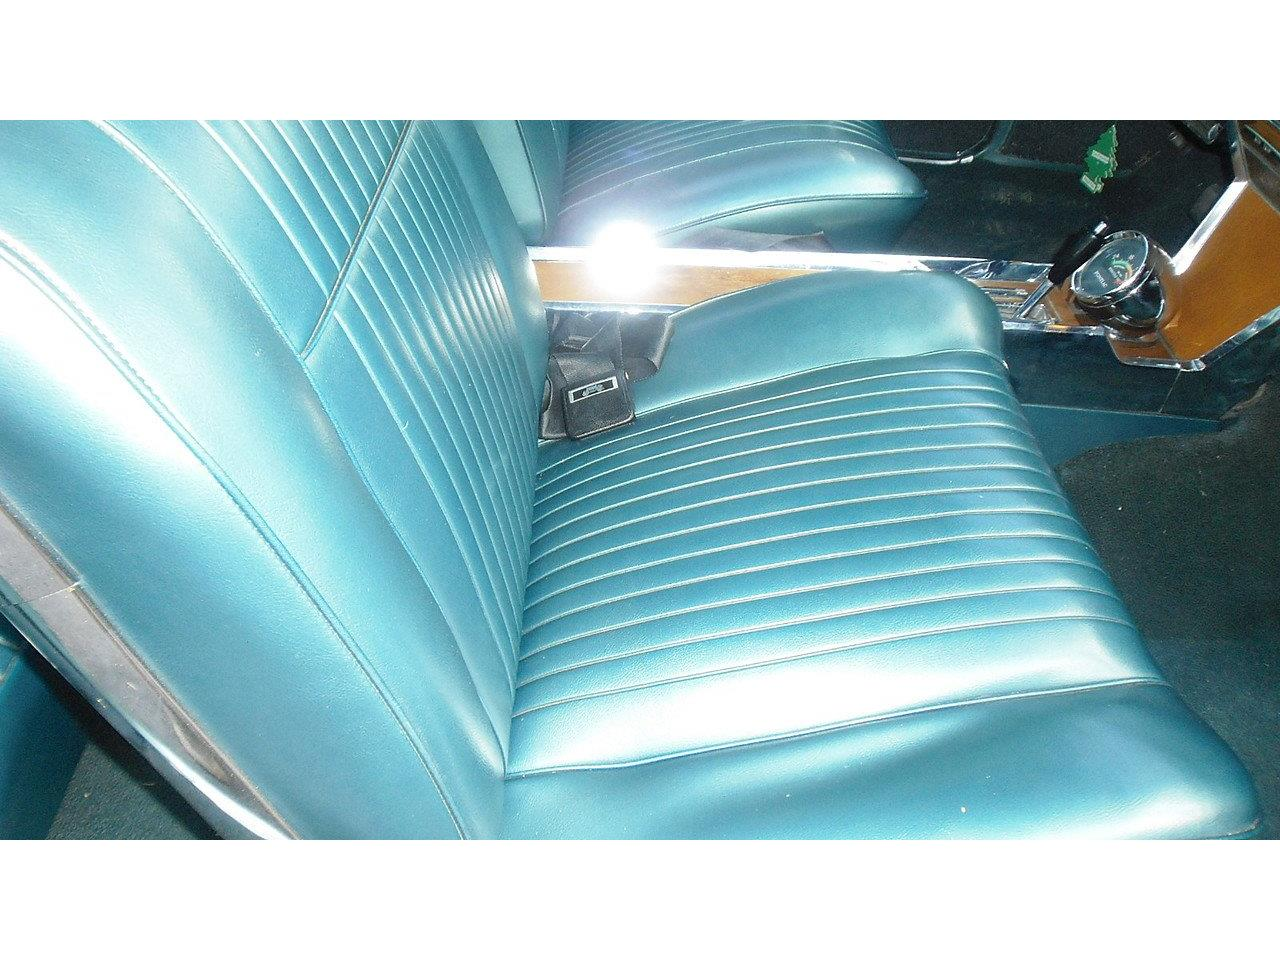 Large Picture of Classic 1965 Pontiac Grand Prix located in Arizona Auction Vehicle - MO8Y